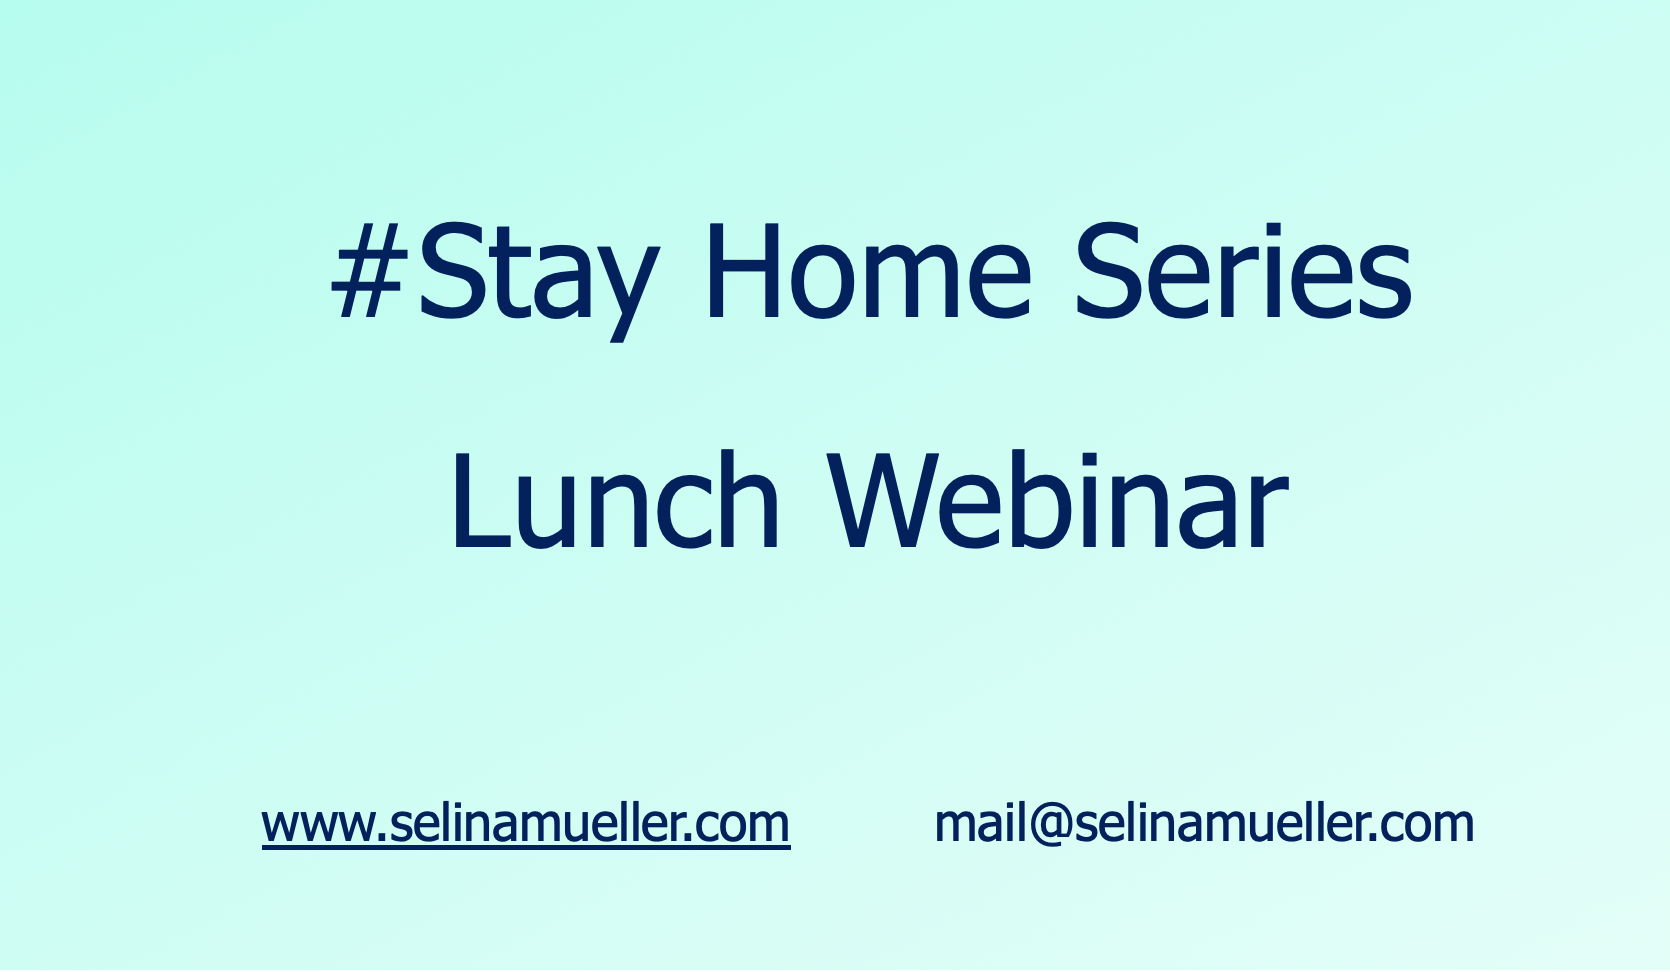 #Stay Home Series – Lunch Webinar